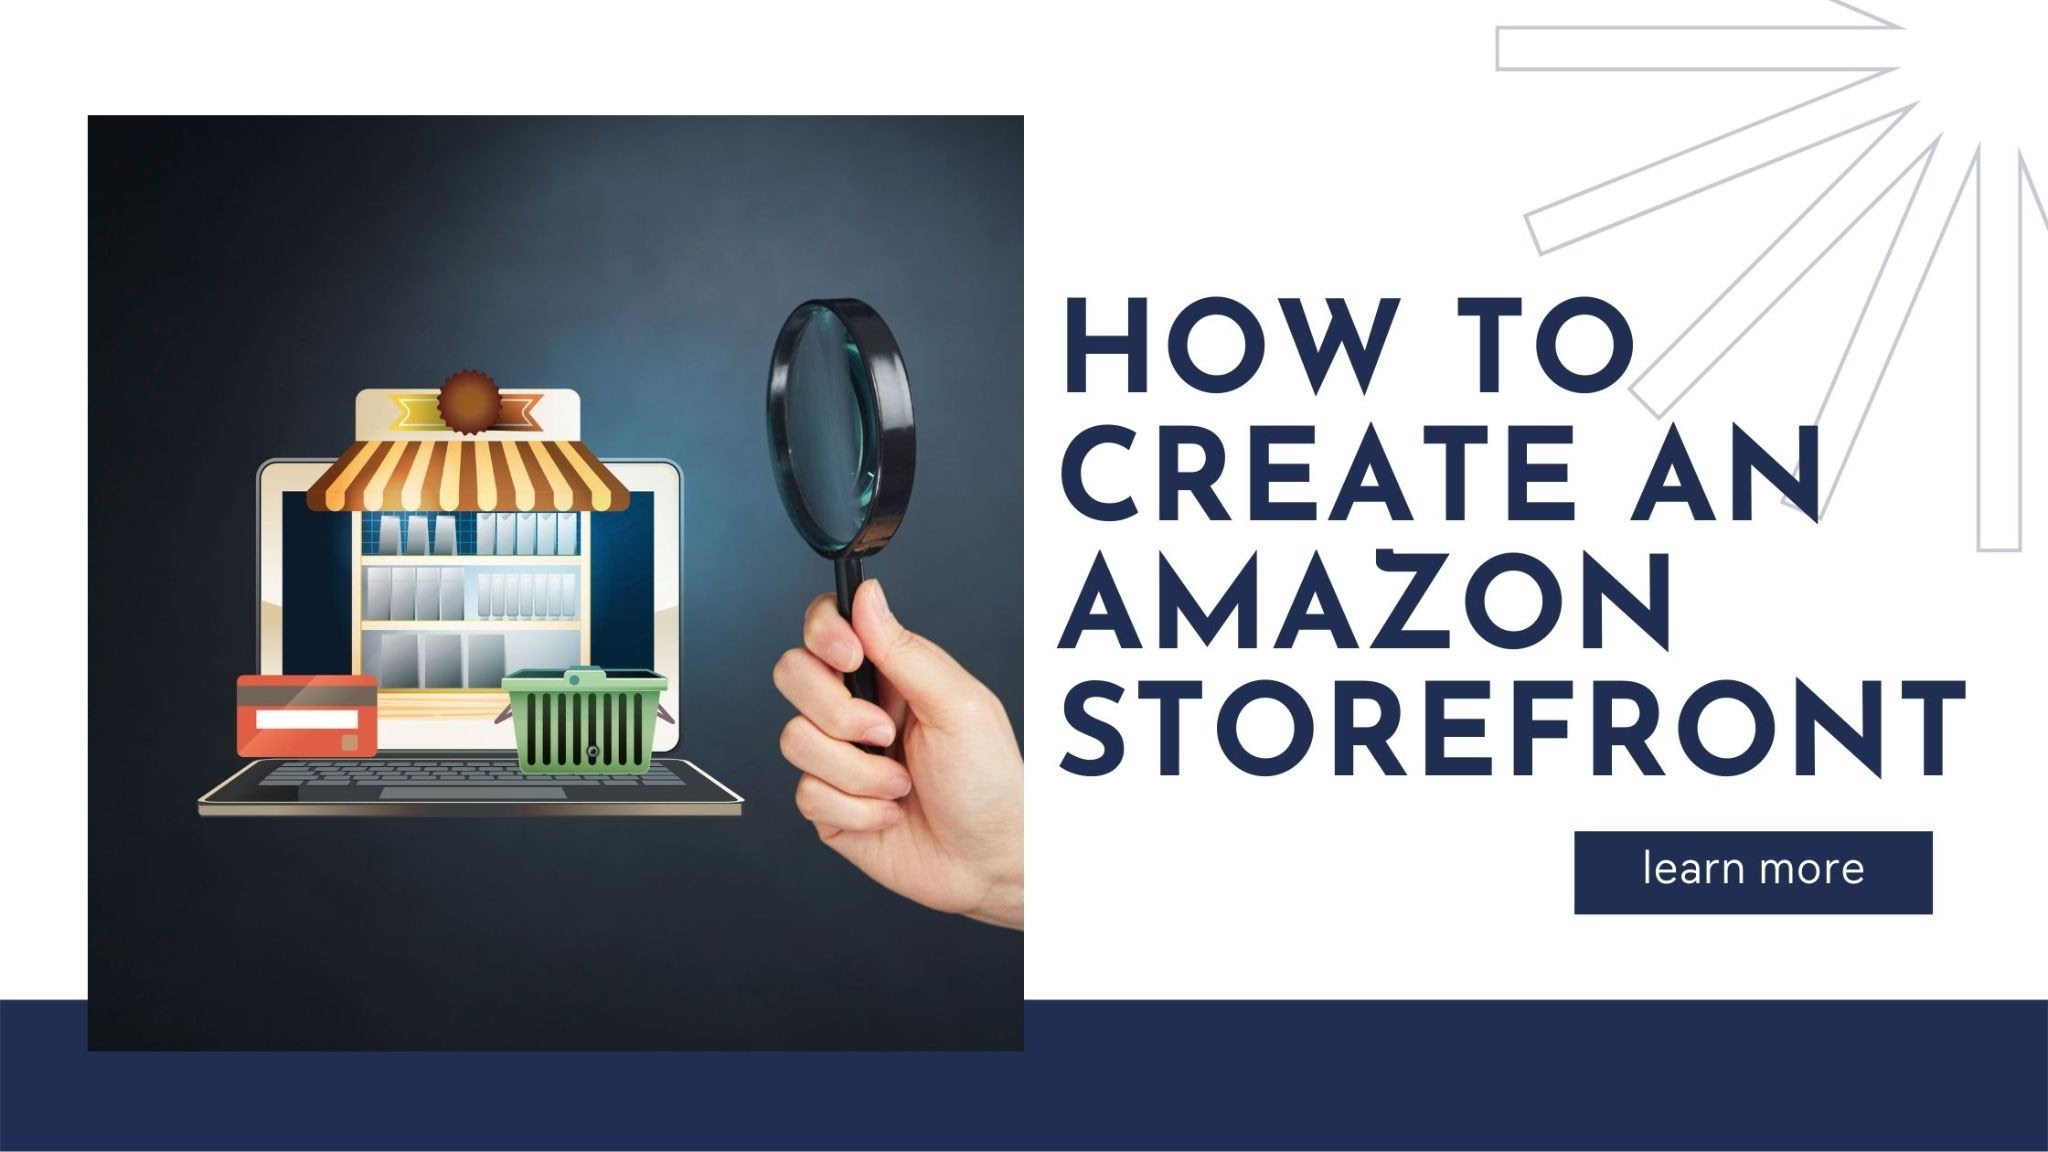 How to create an Amazon storefront